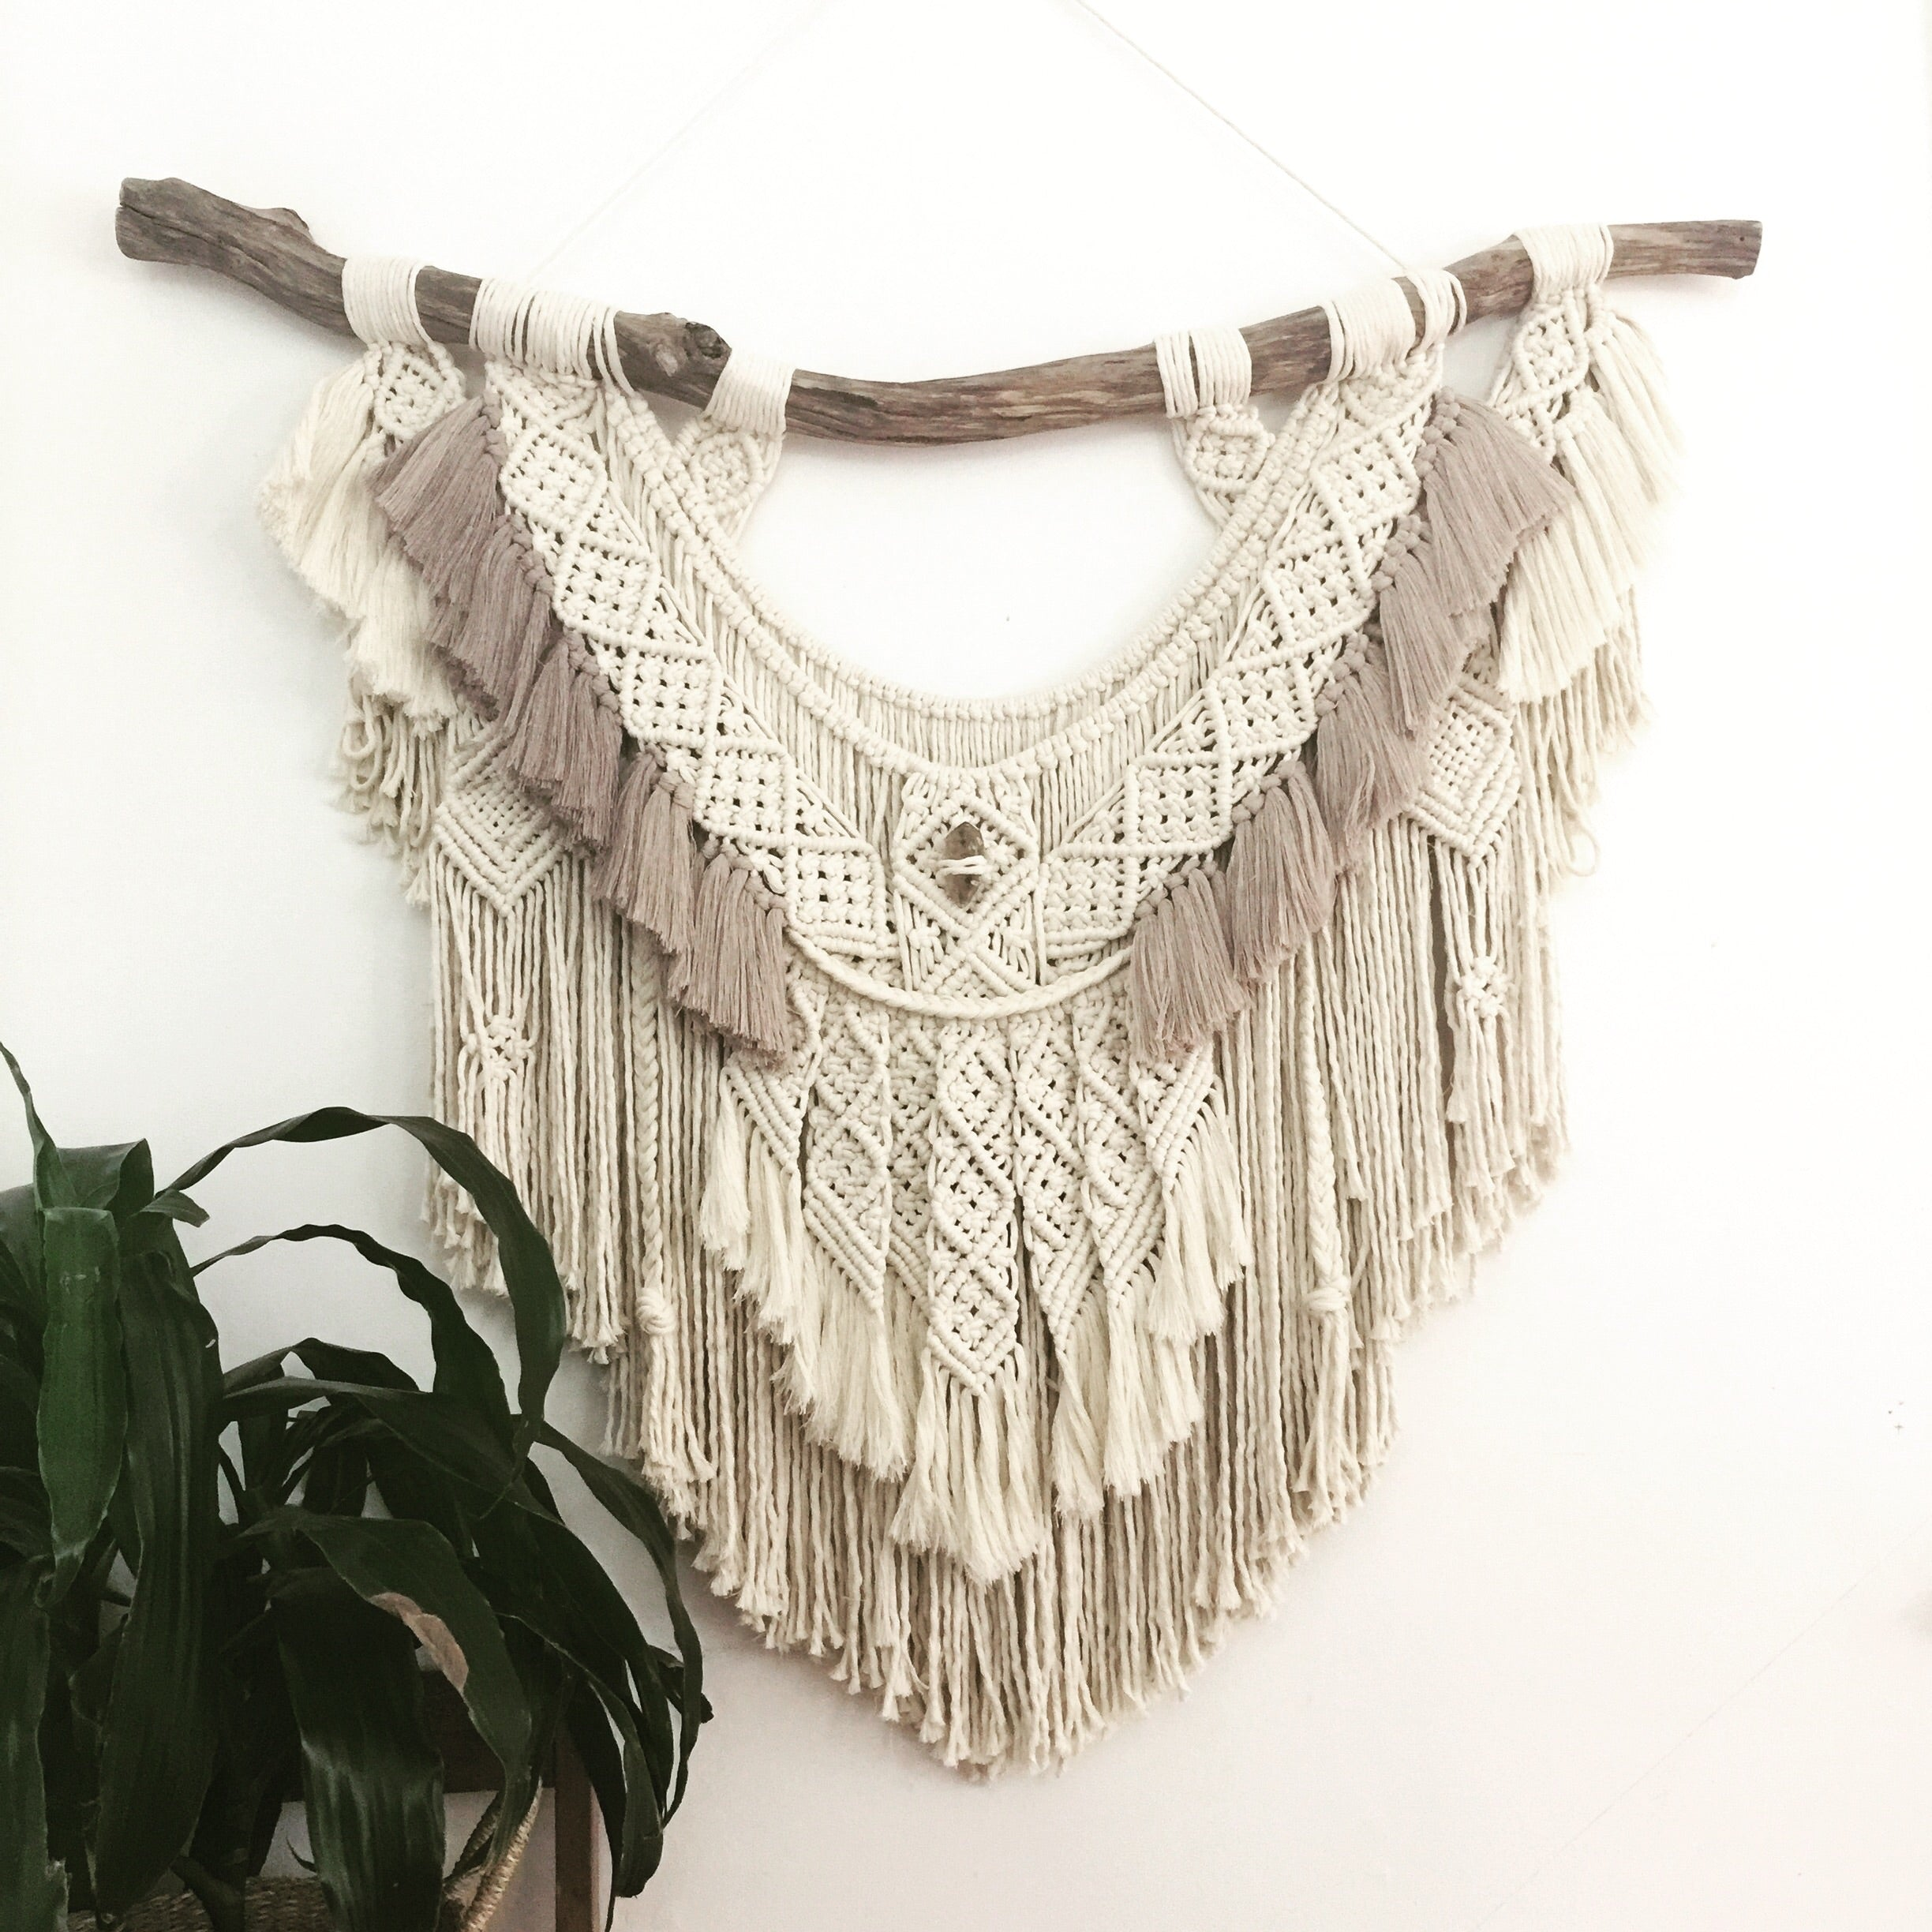 Family Embrace - Custom made Macramé Wall Hanger